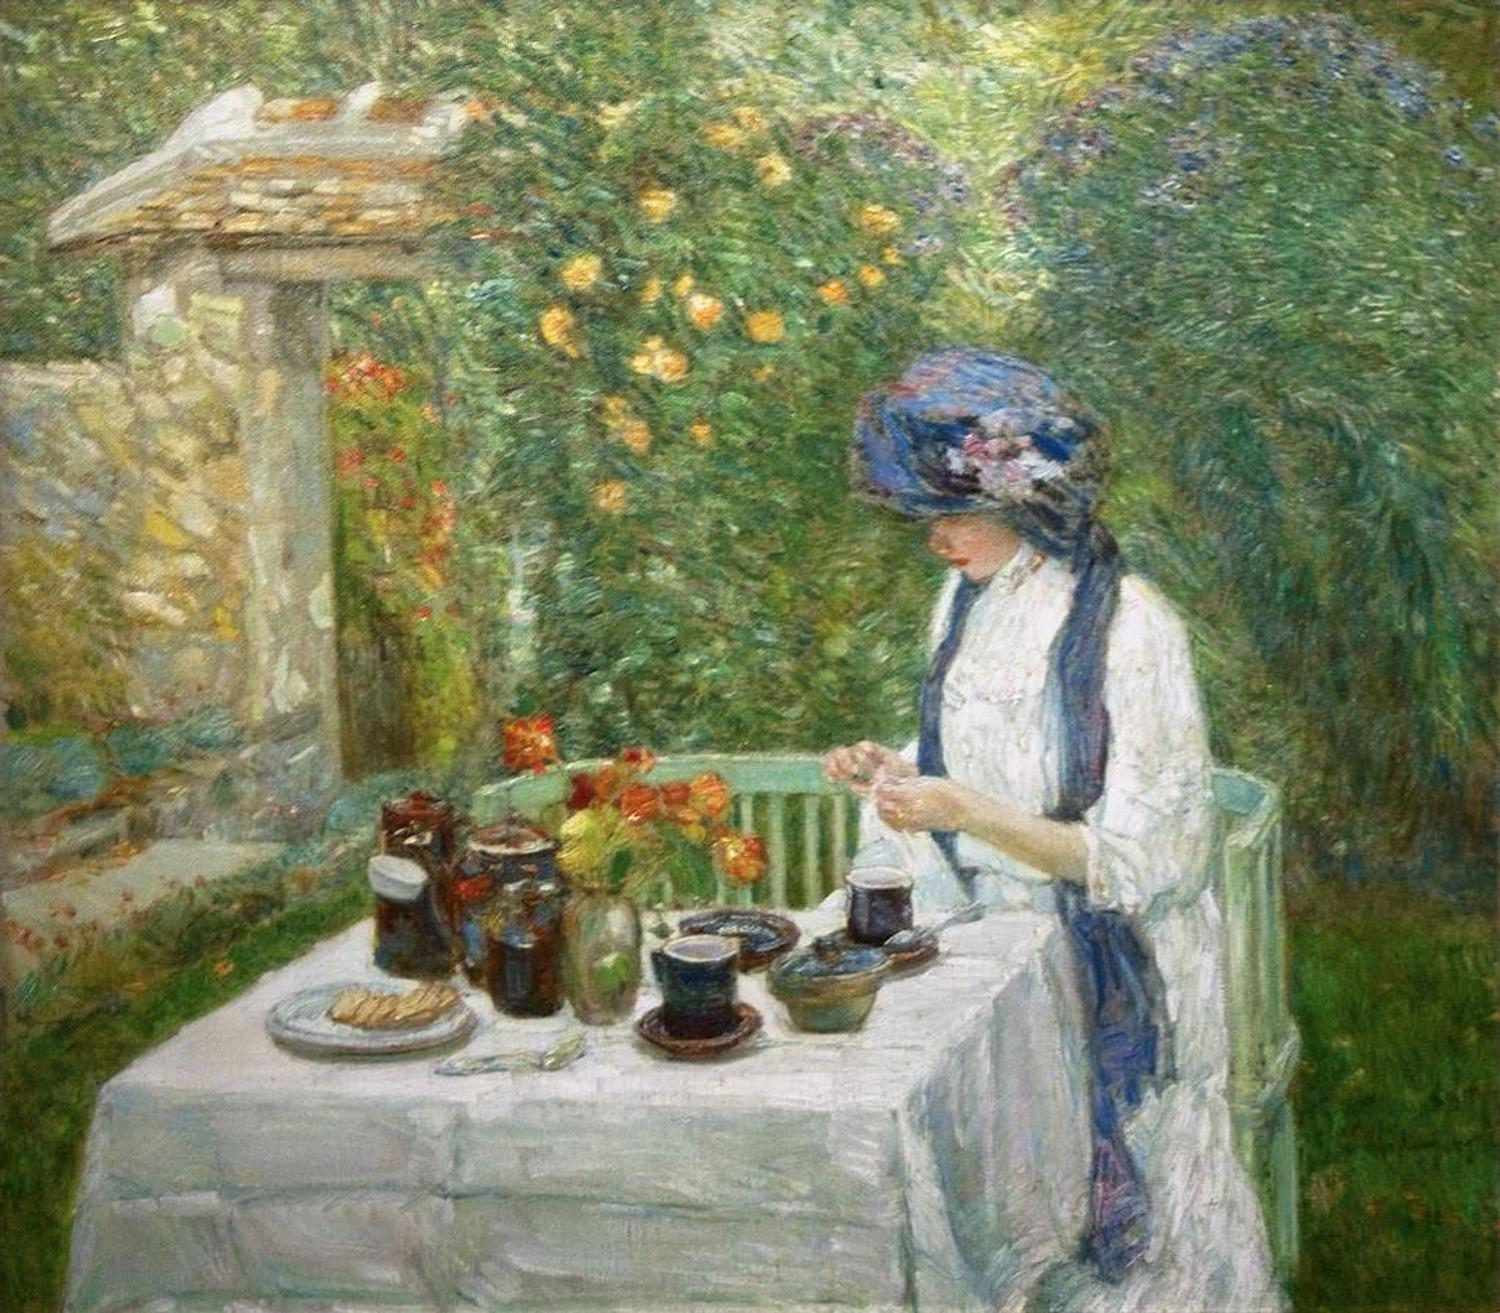 Paintings Lady With Dogs Drinking Tea